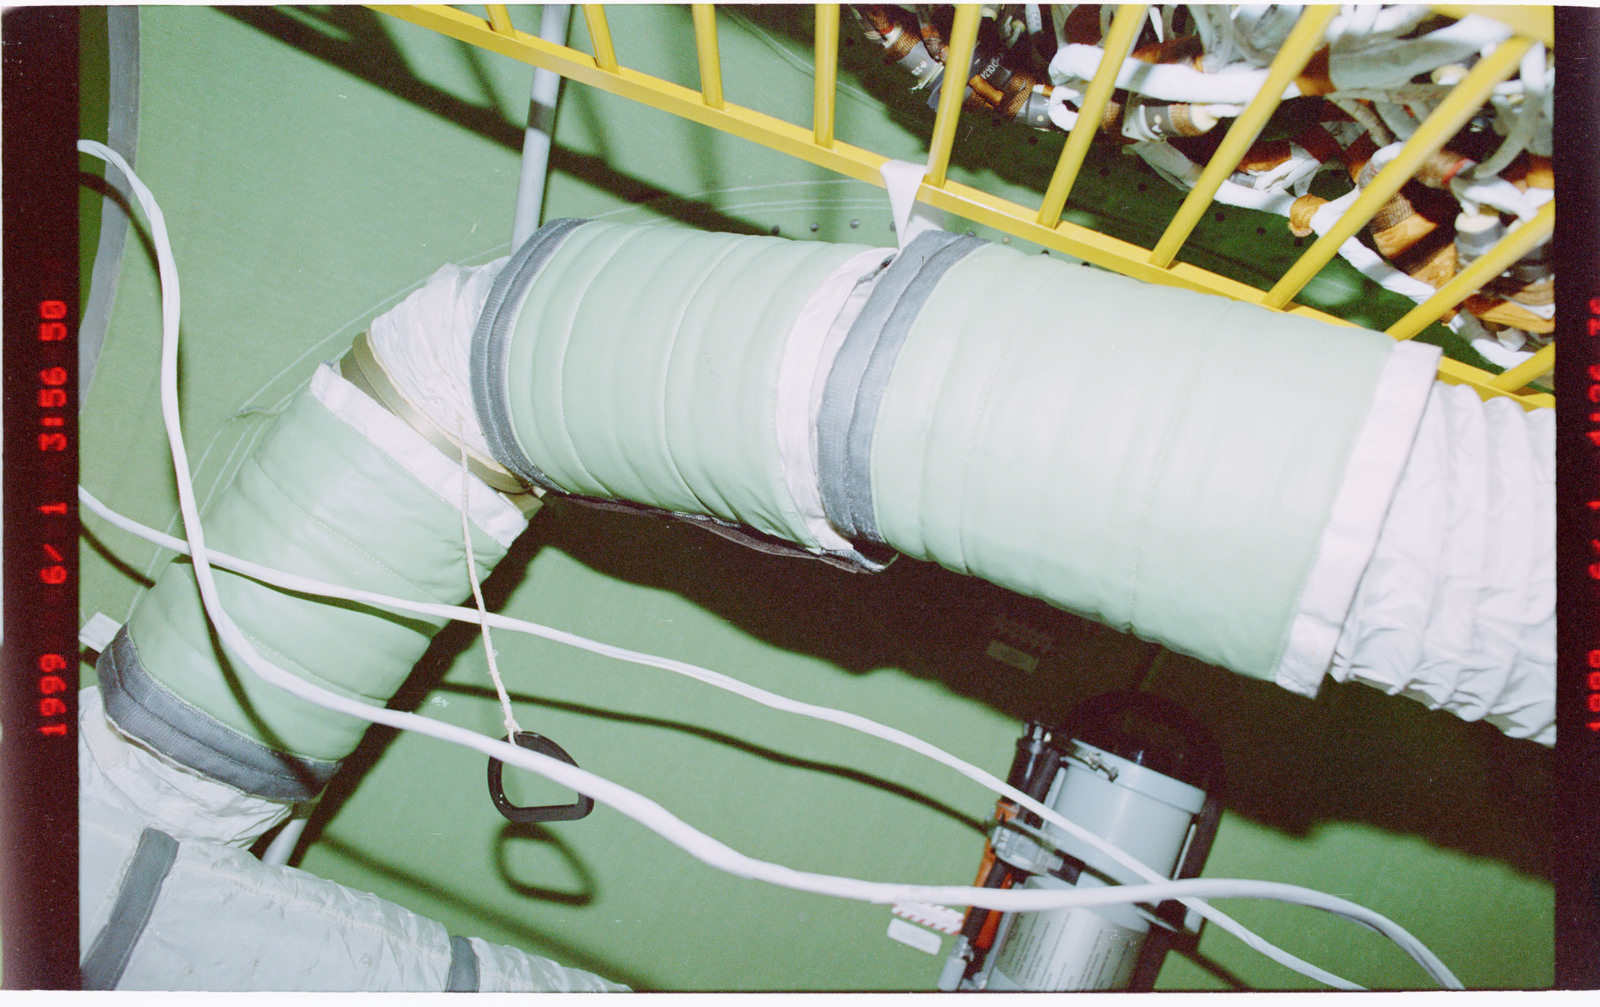 STS096-409-002 - STS-096 - Sound supressions equipment attached to ventilation hoses